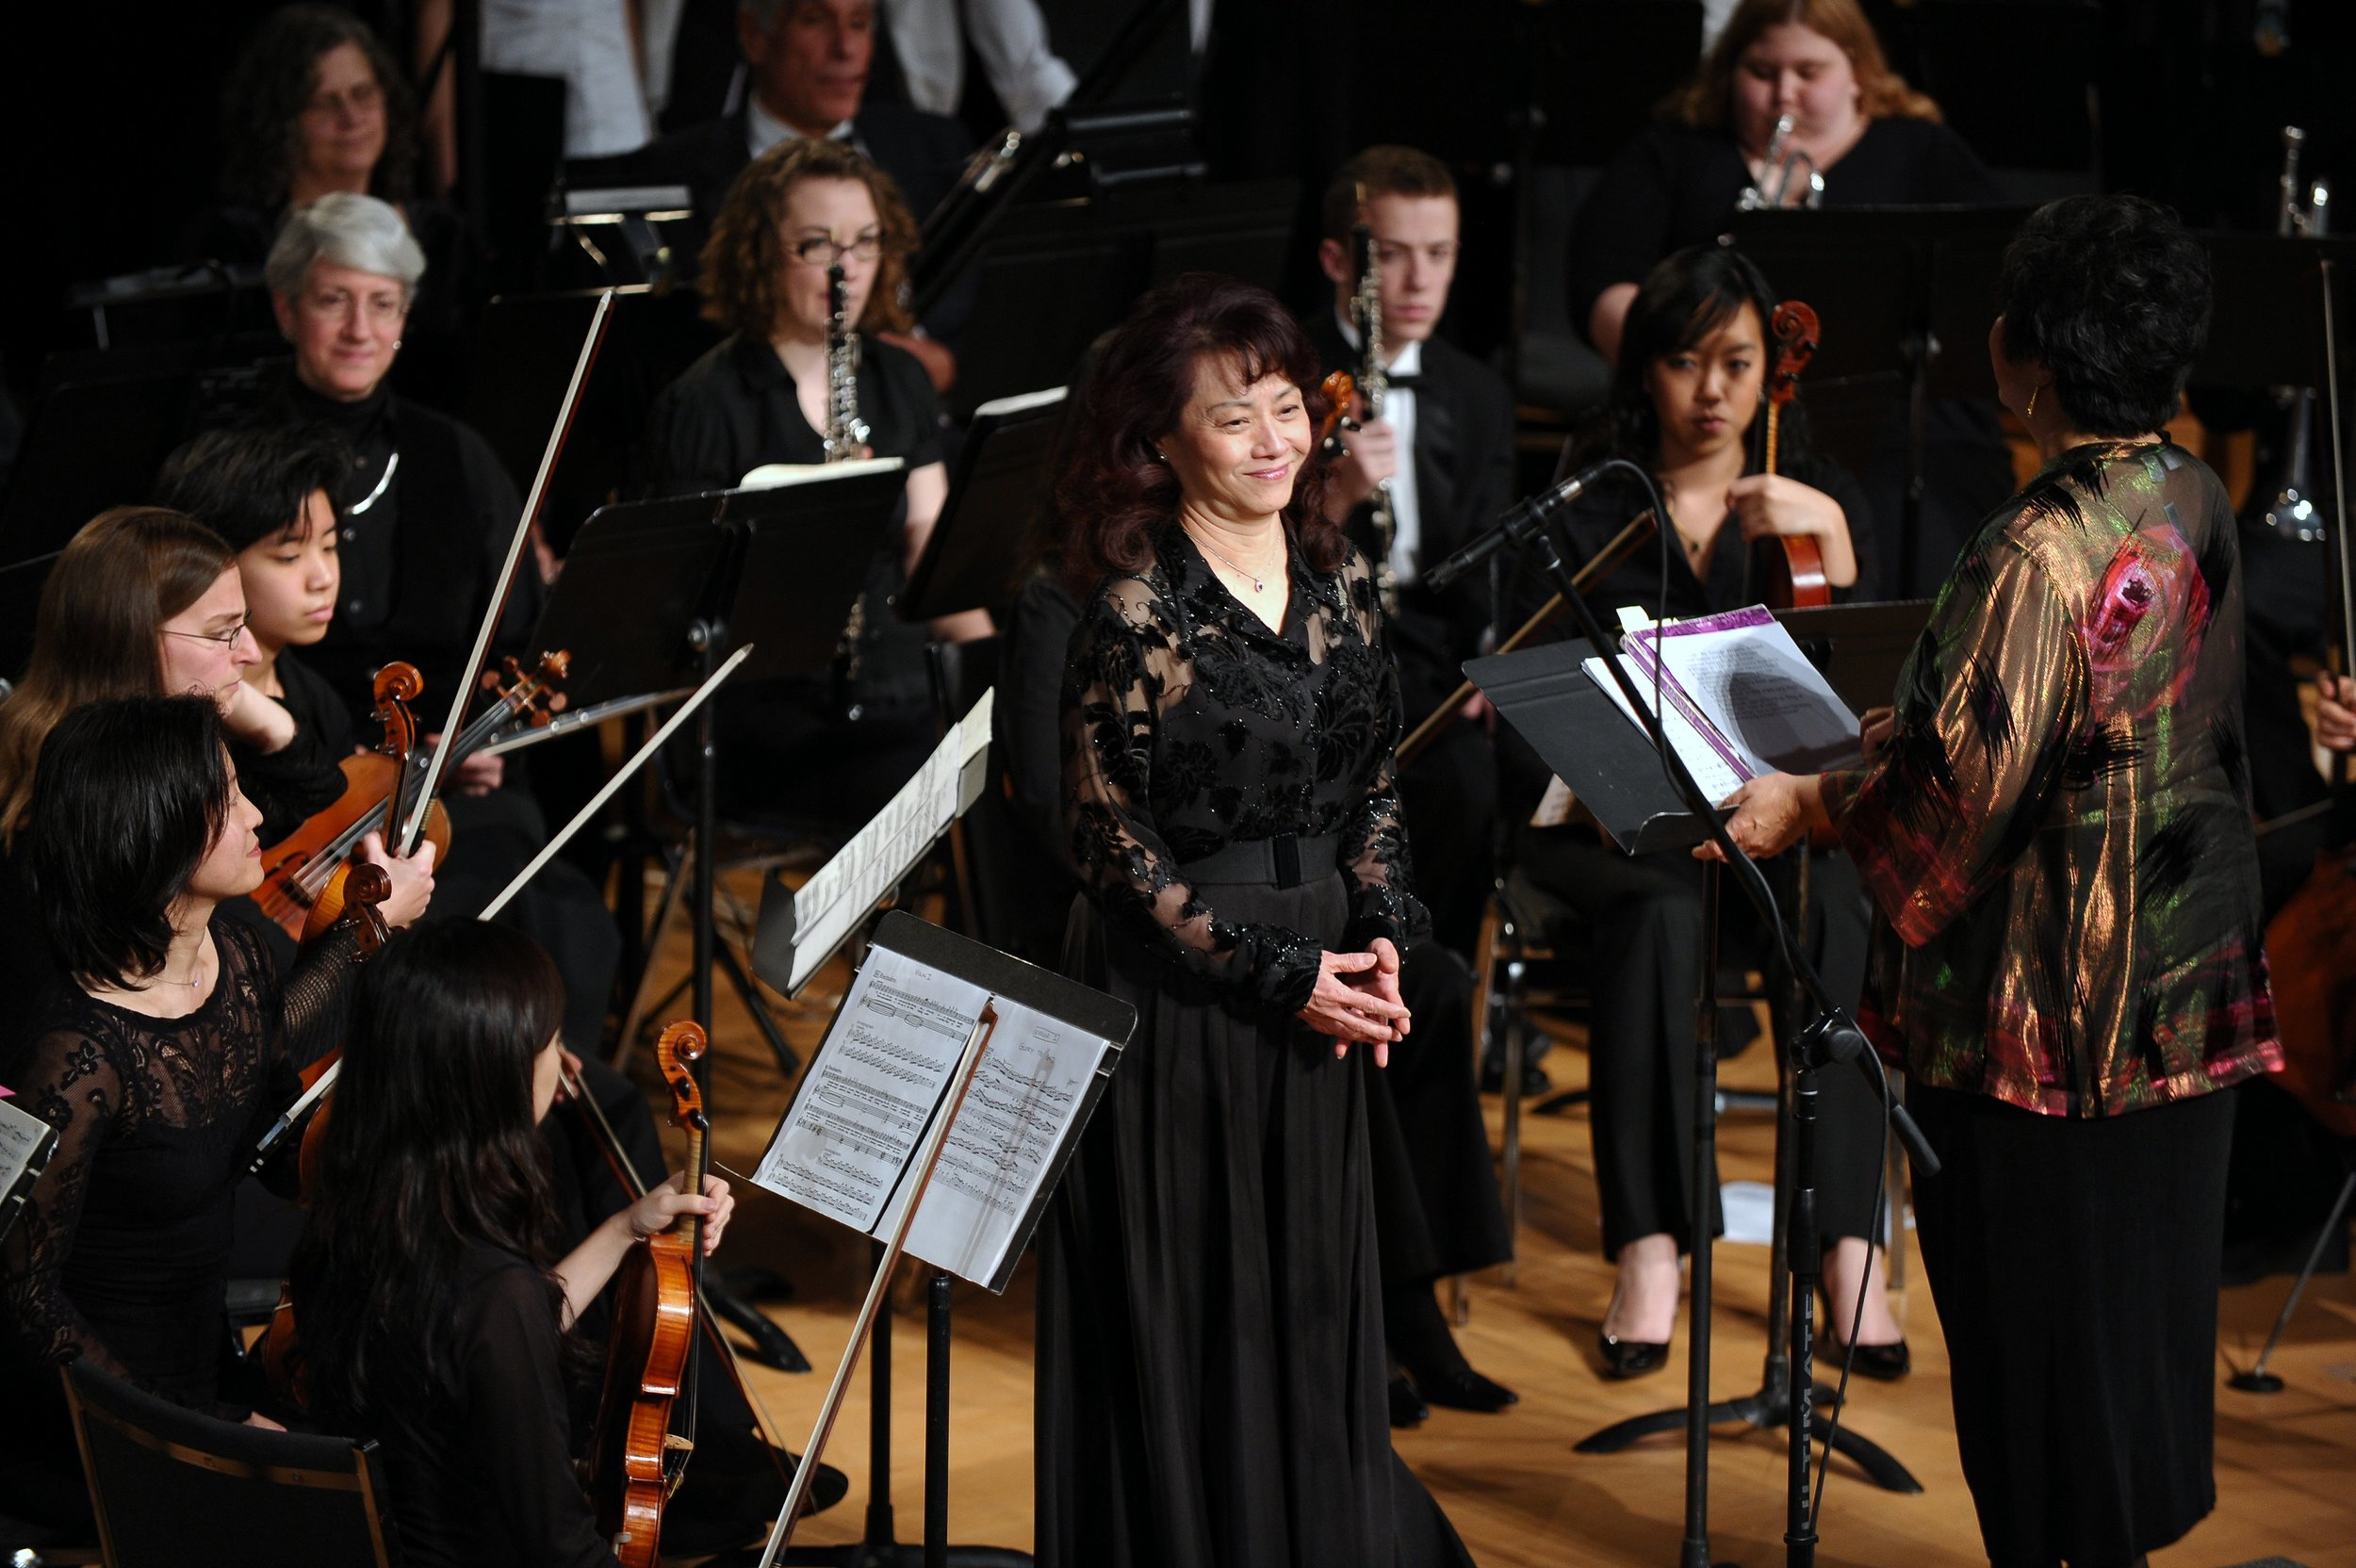 Soprano Wennie Niu's aria performance in Handel's Messiah